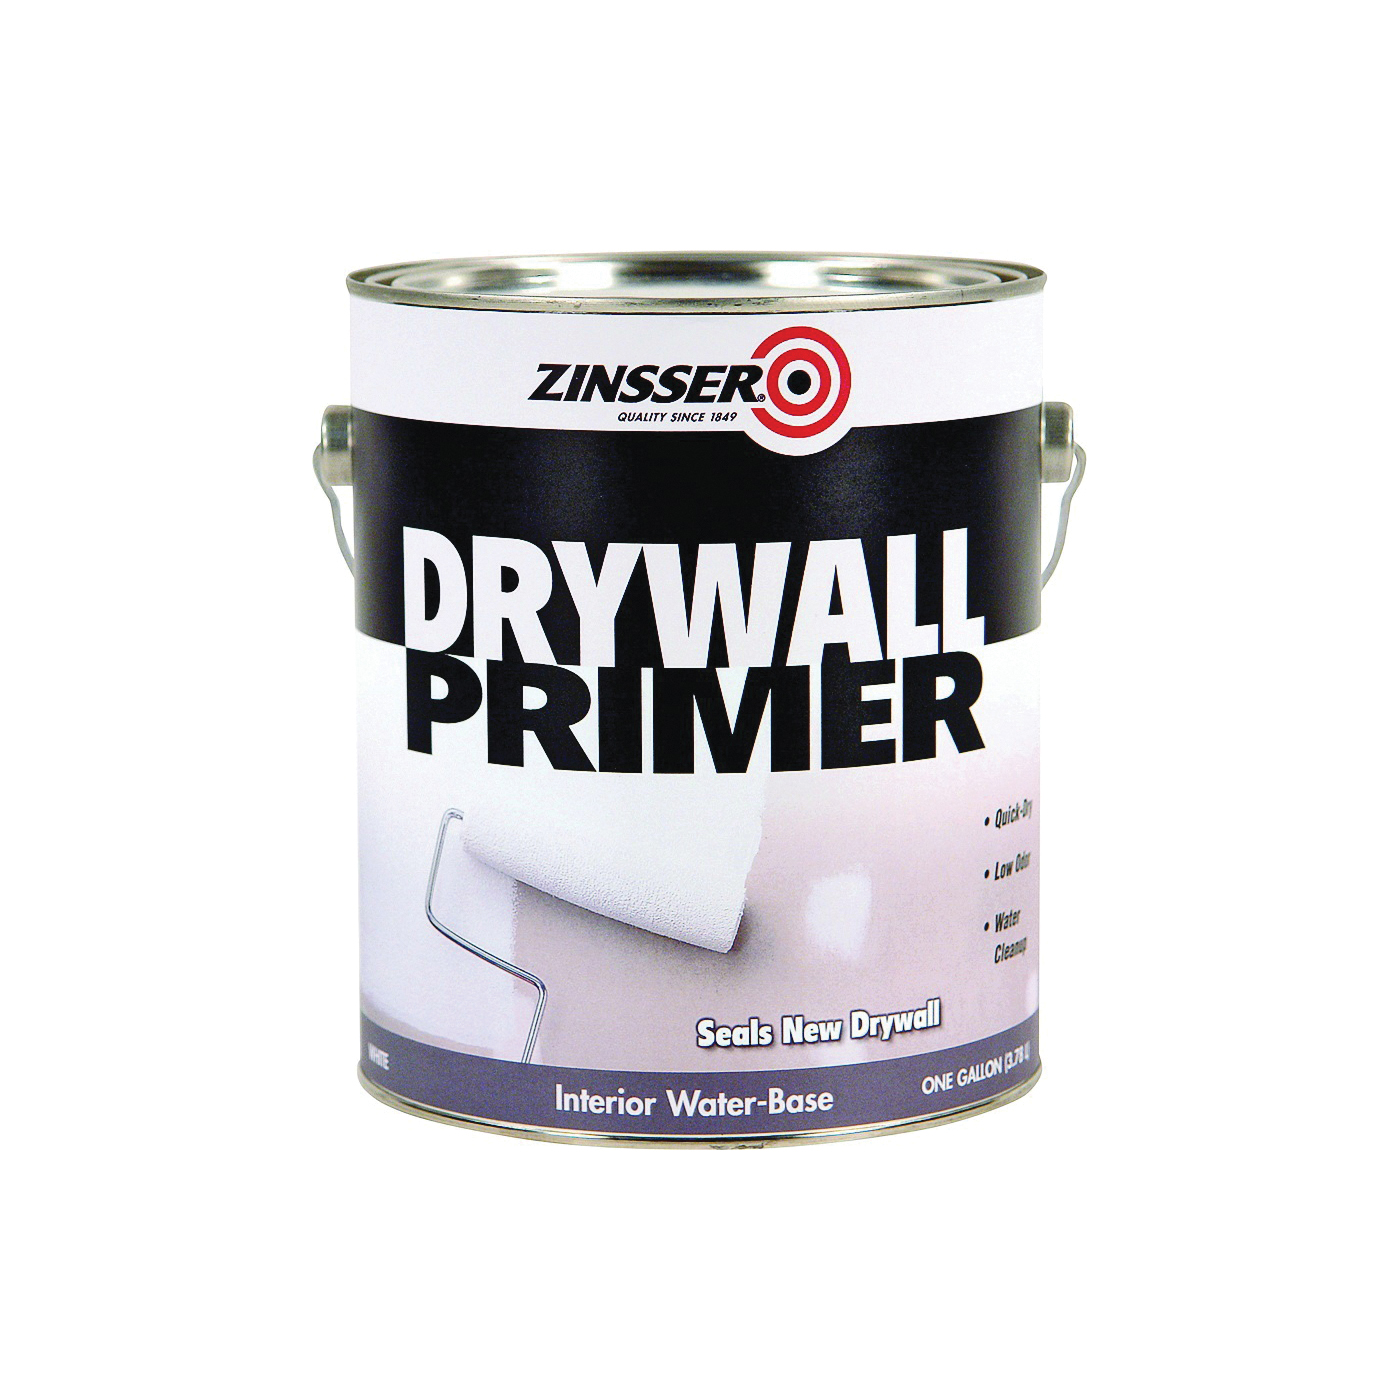 Picture of ZINSSER 01501 Primer, White, 1 gal